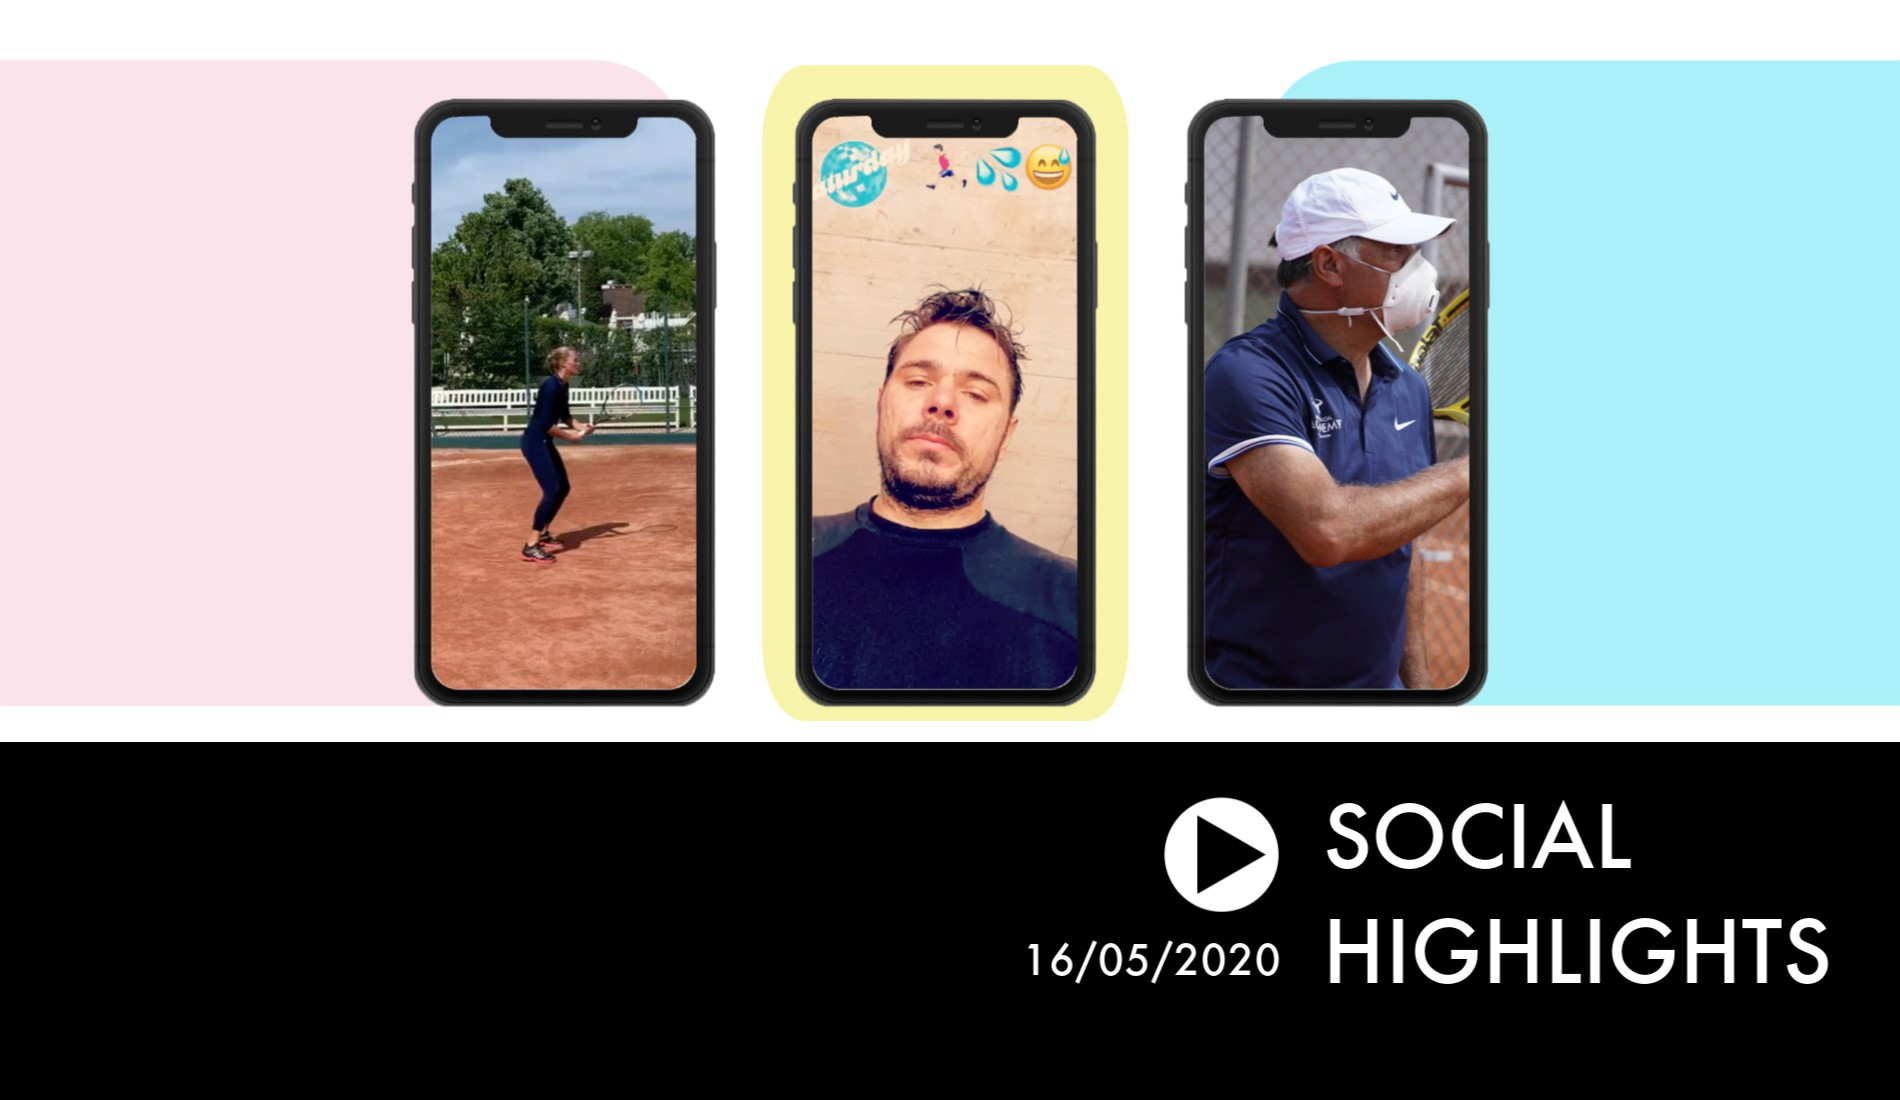 Social Highlights - Players are back on court